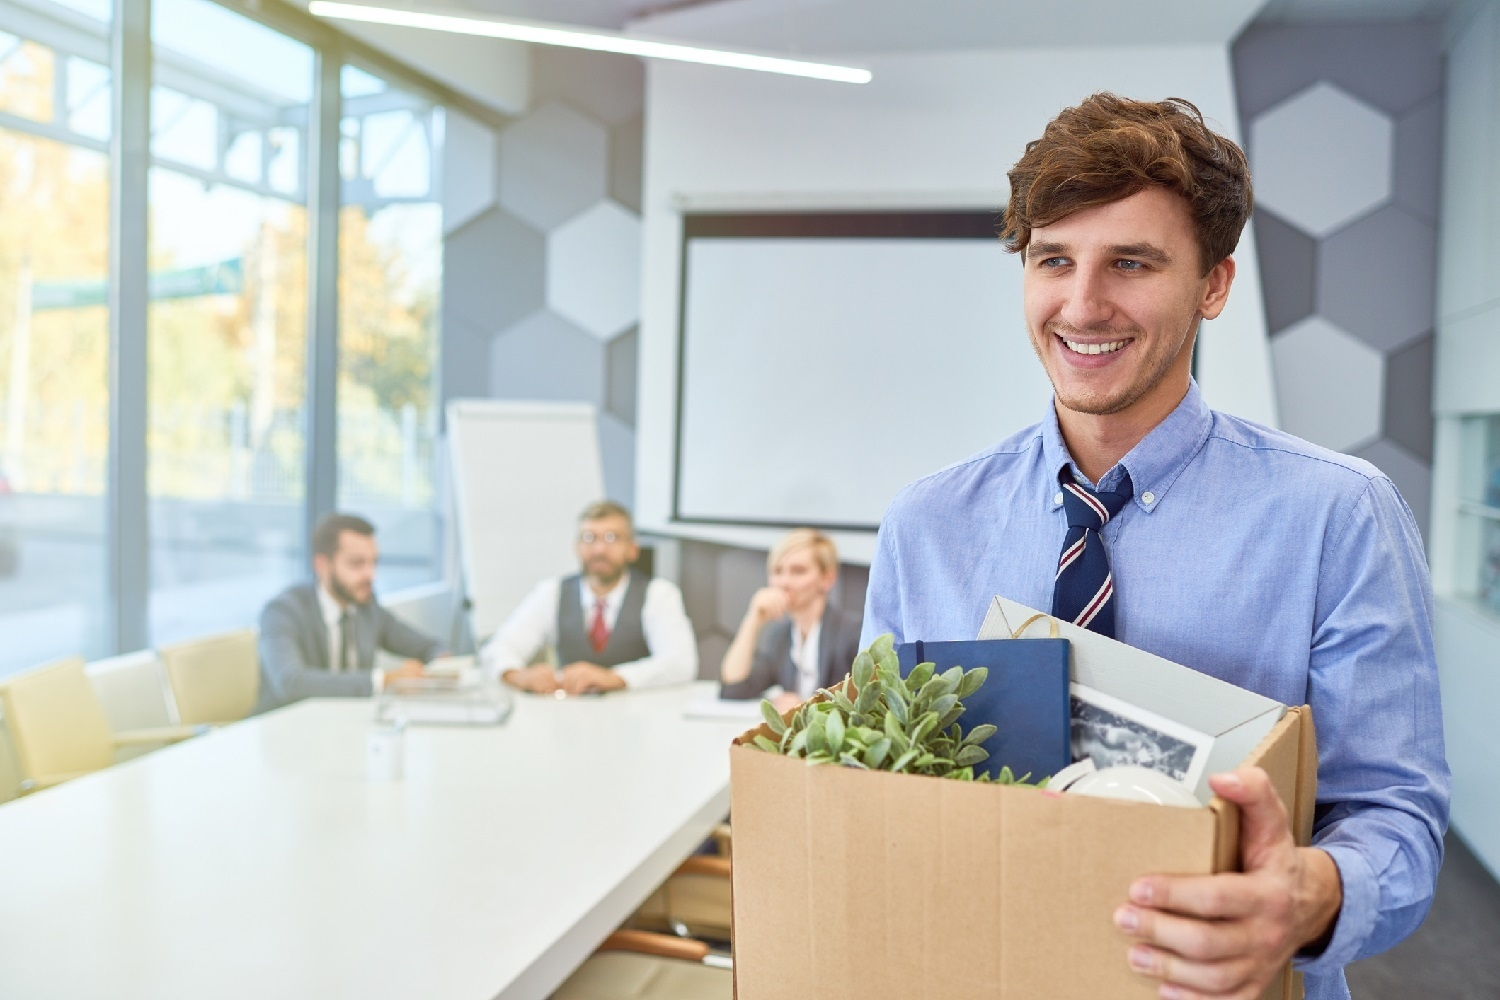 Skills to Use While Quitting a Job